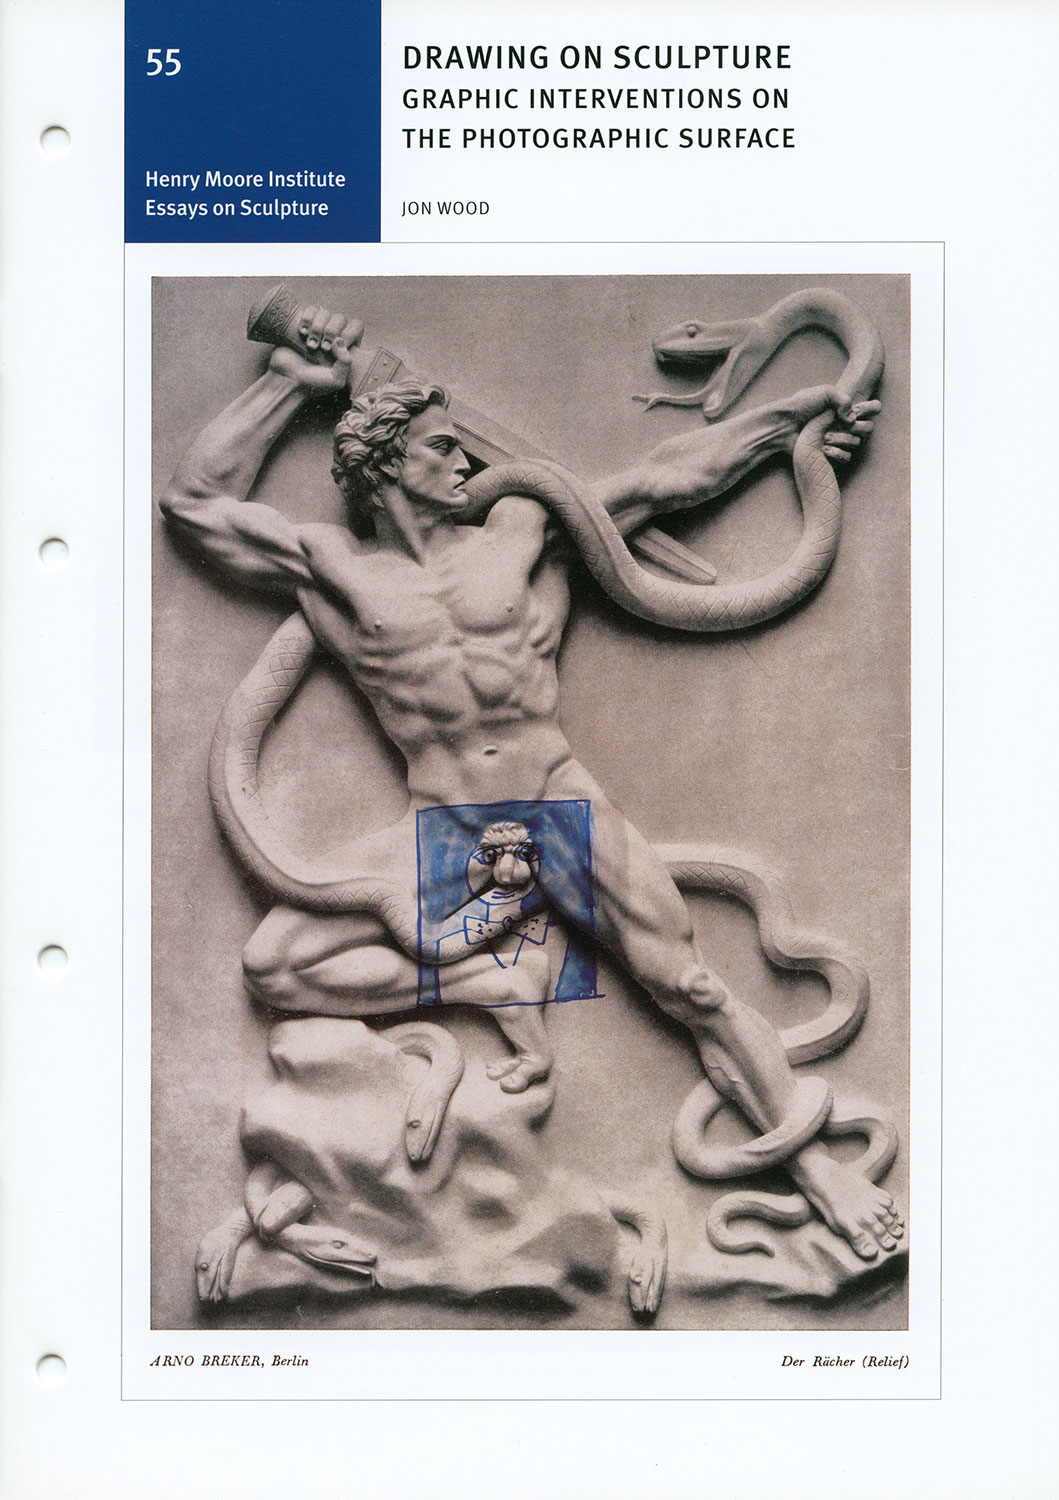 sculpture essay questions A free database of sculpture papers join our largest peer essay sharing community get your free sculpture essay sample now | page 1.